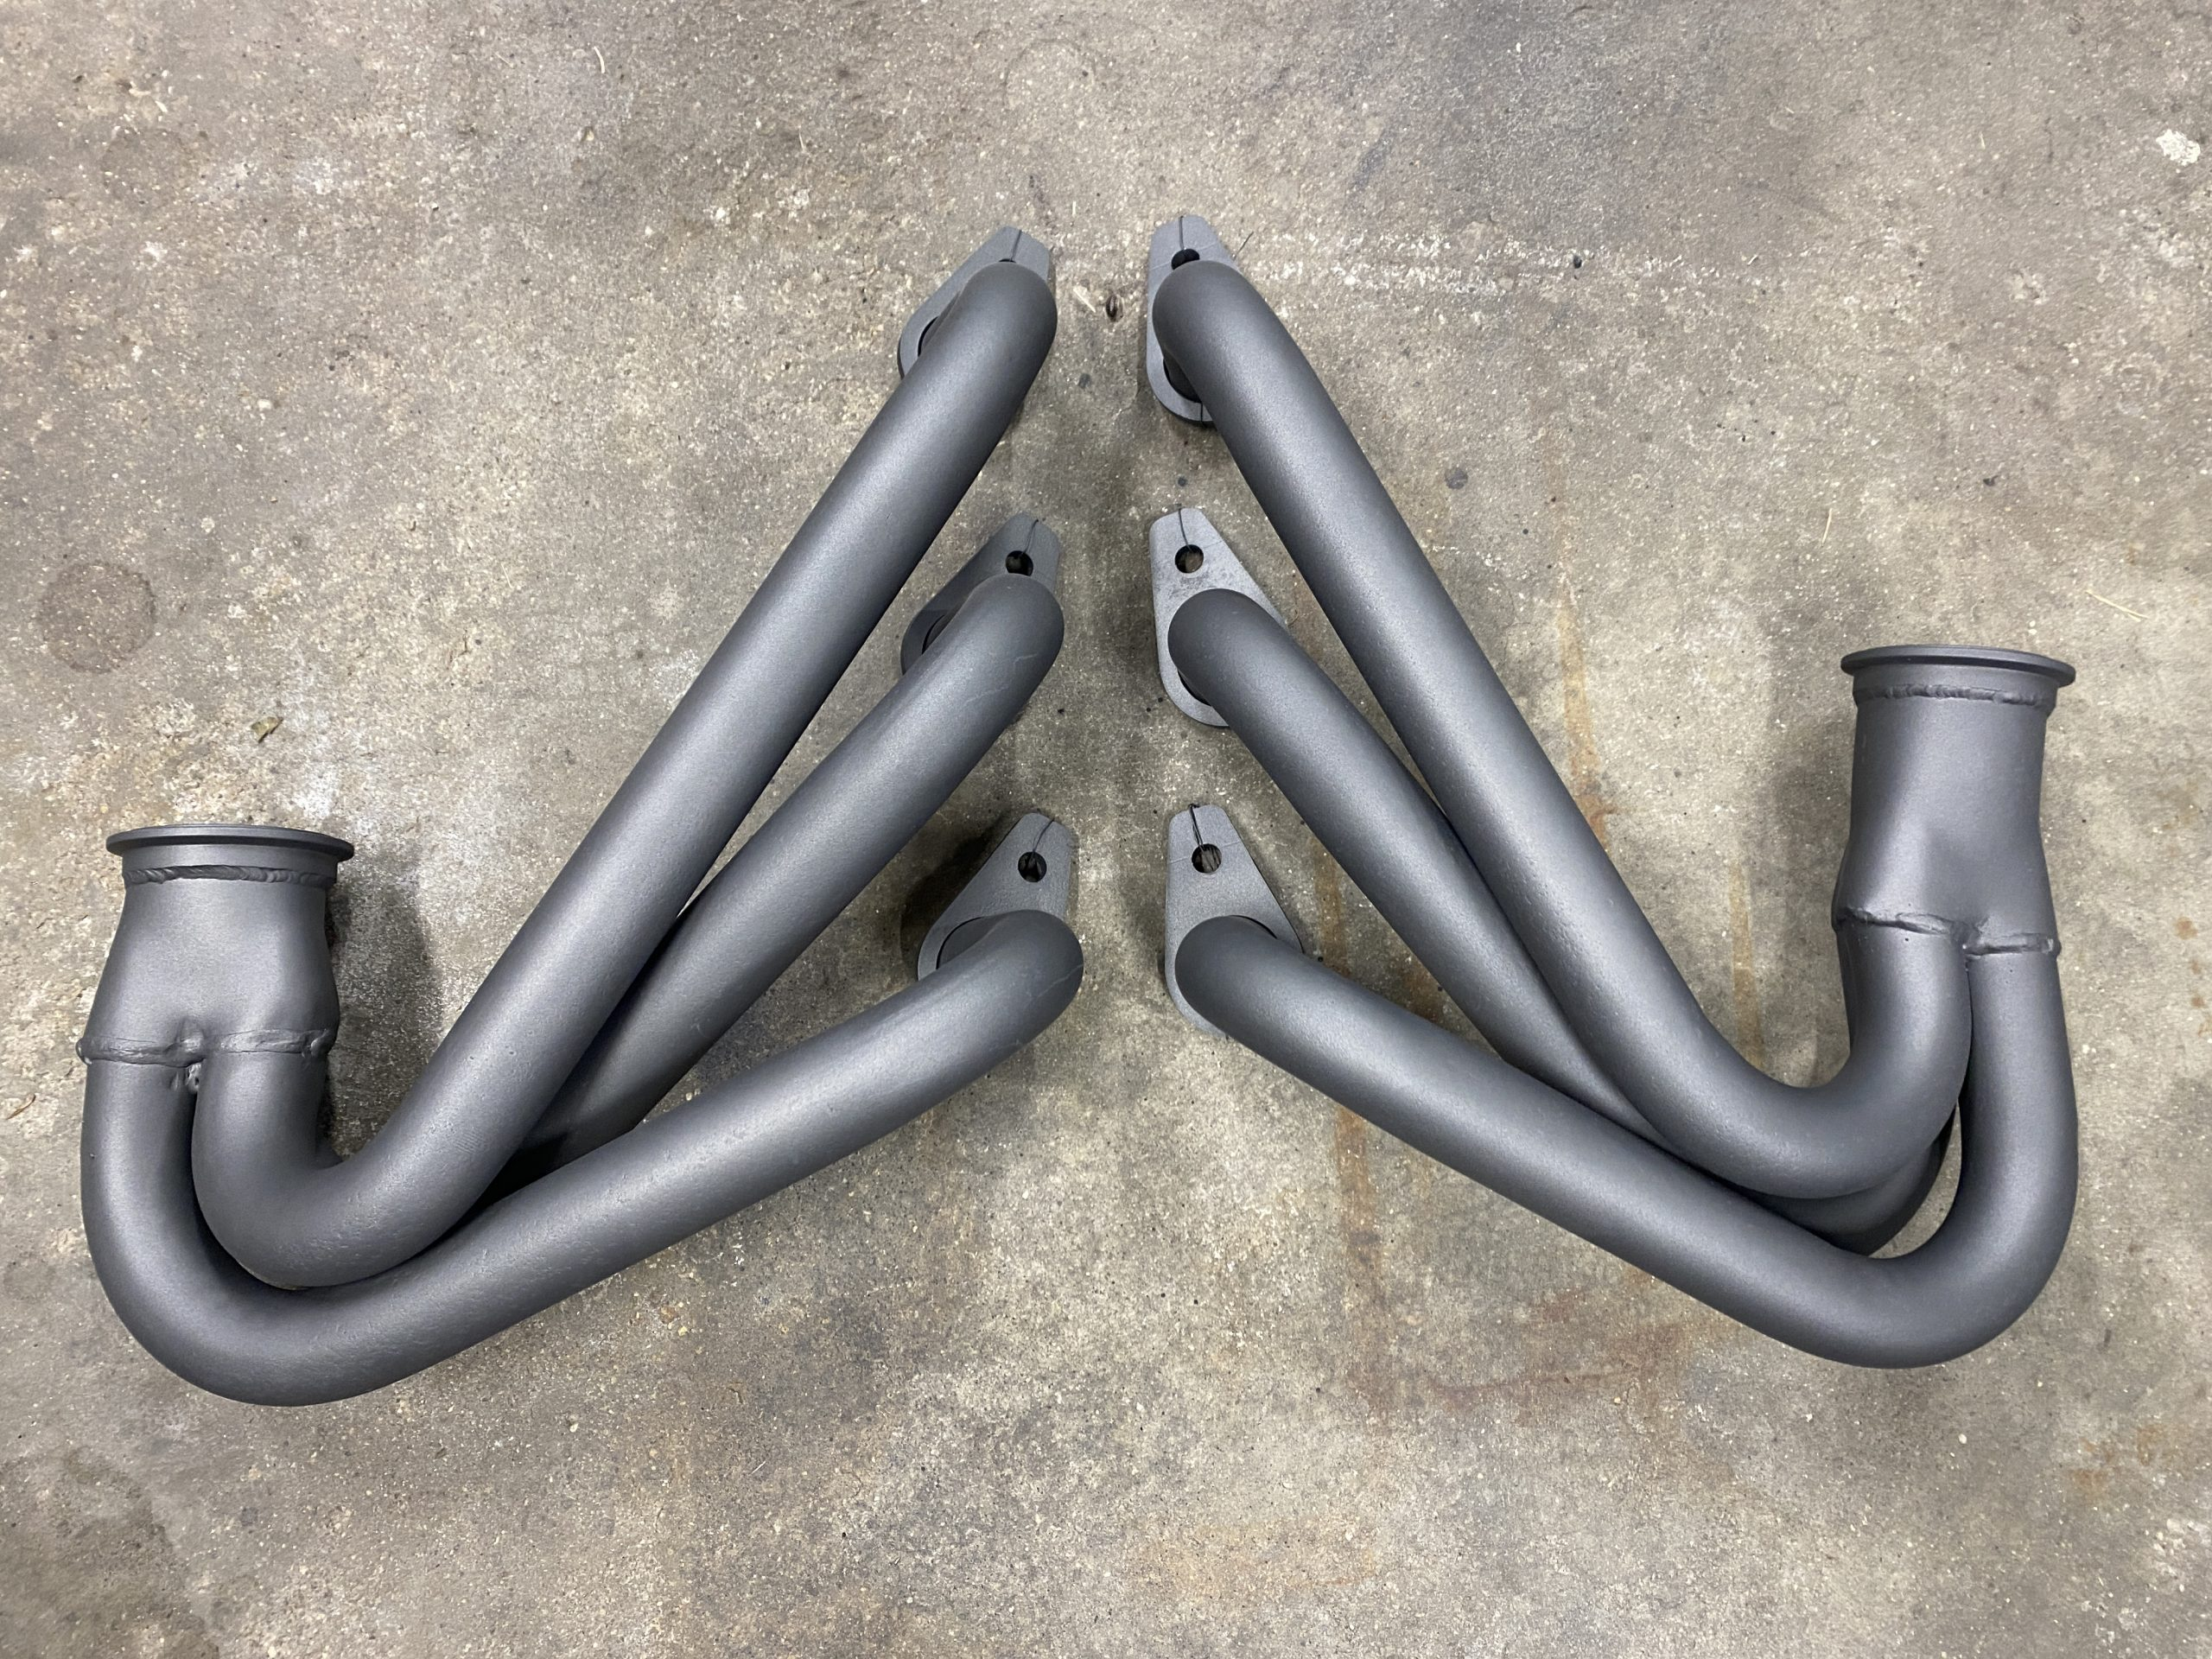 Chevrolet Corvair Headers cerakote pair